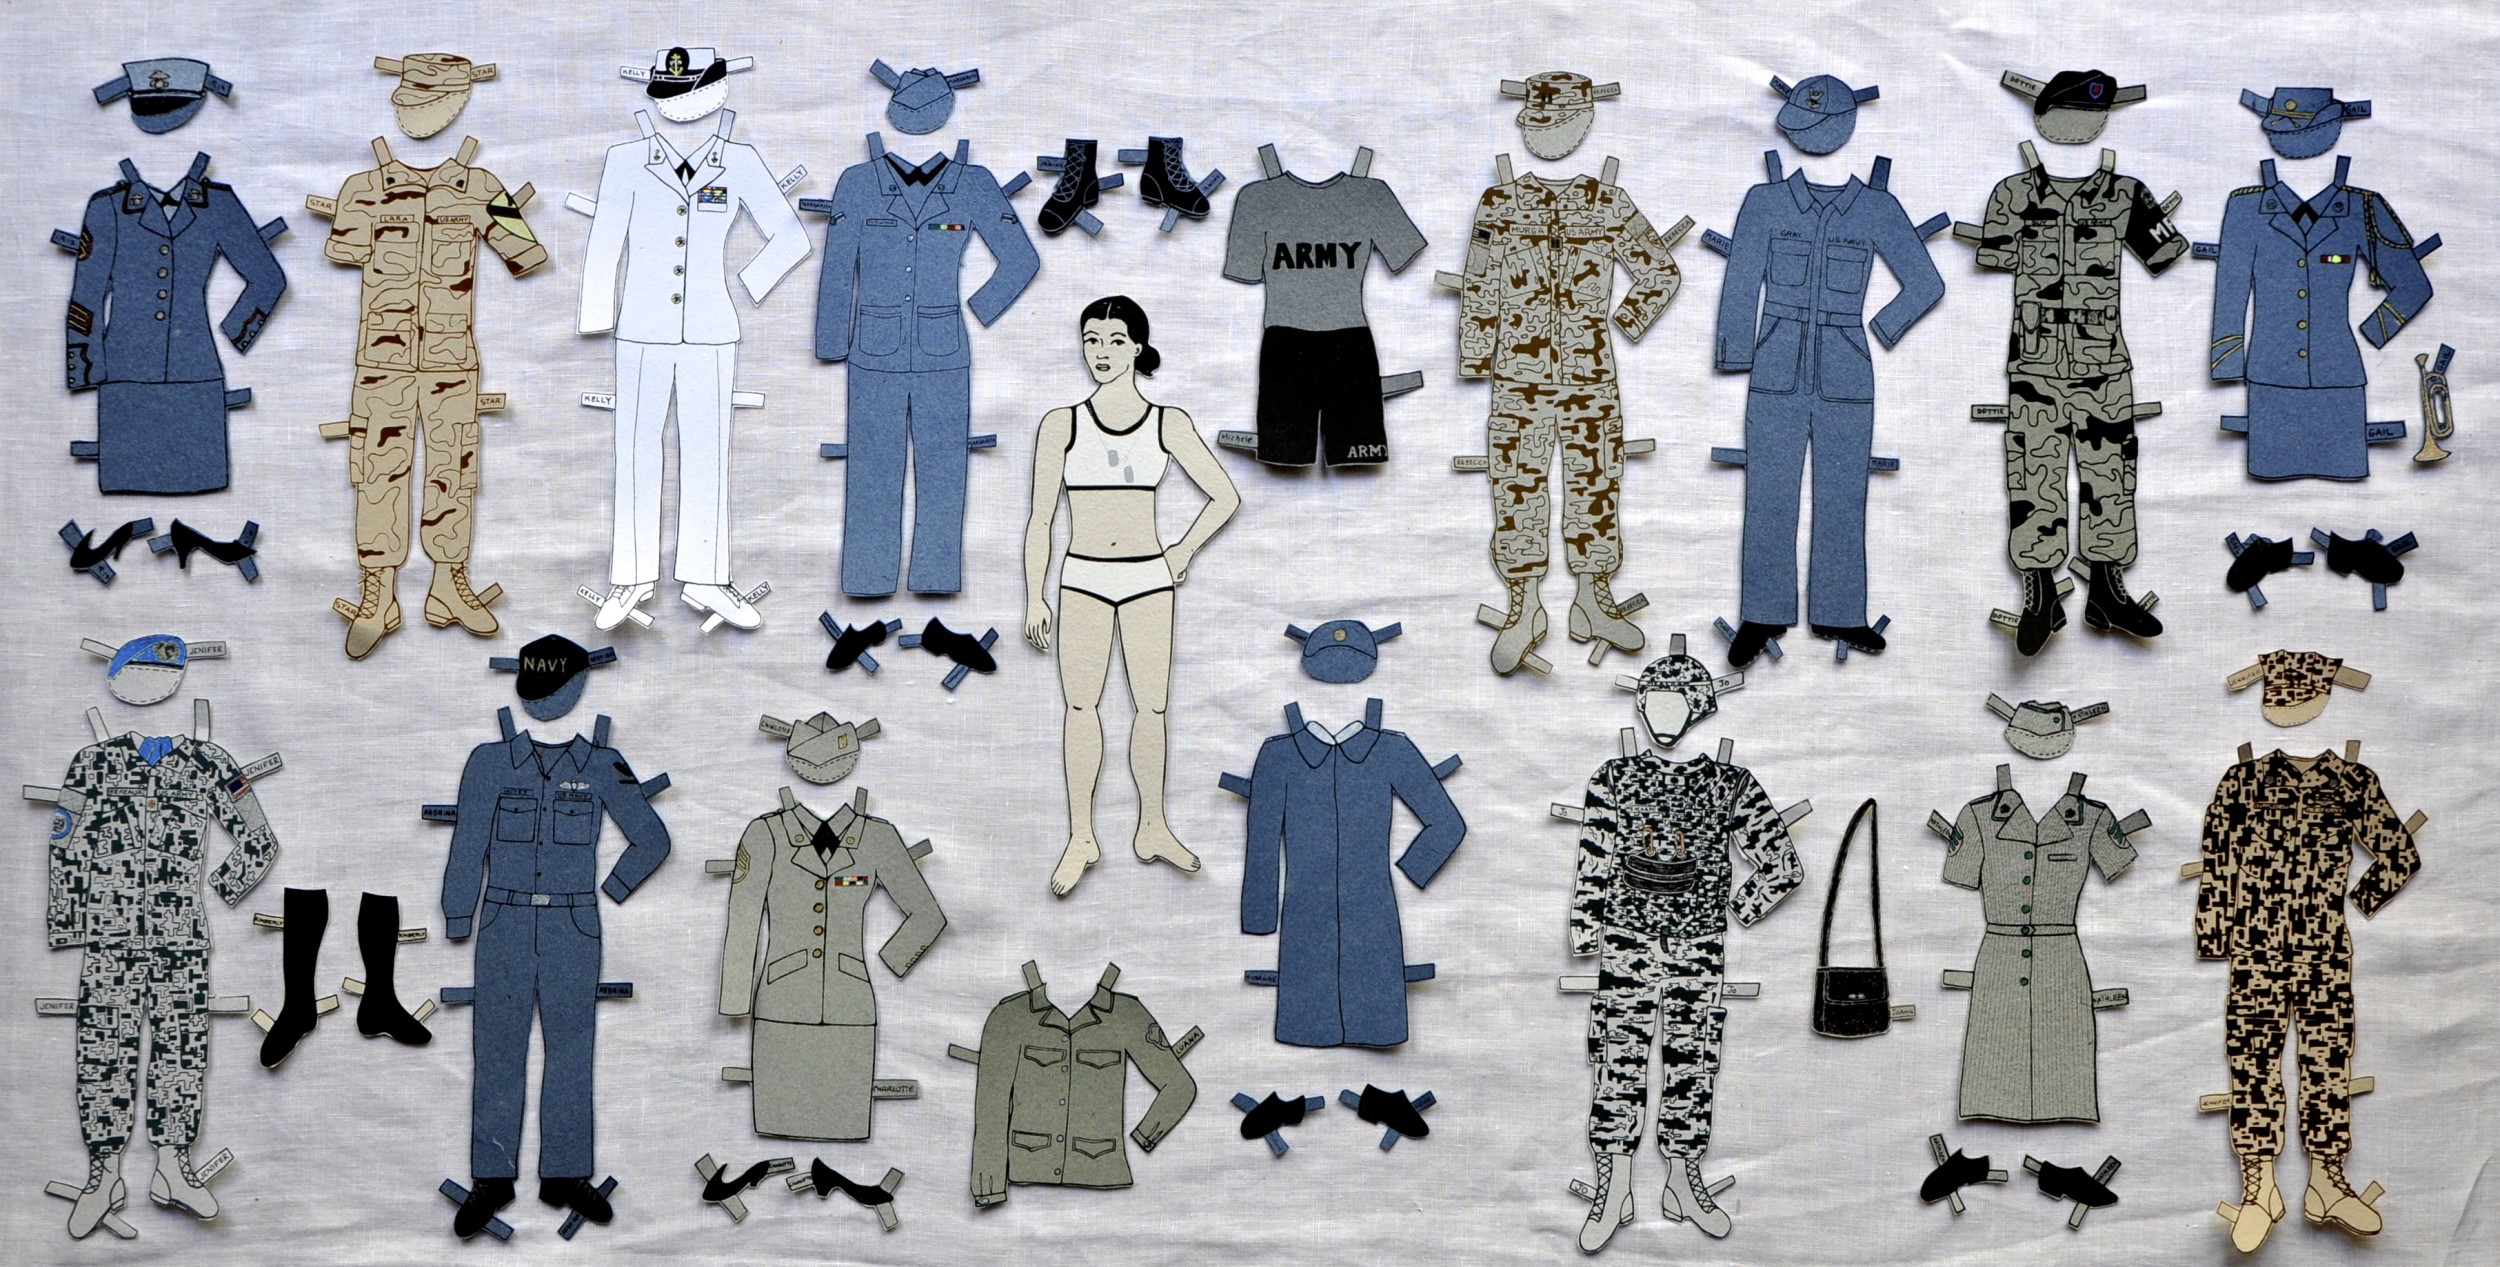 Paper Dolls: stories from women who served